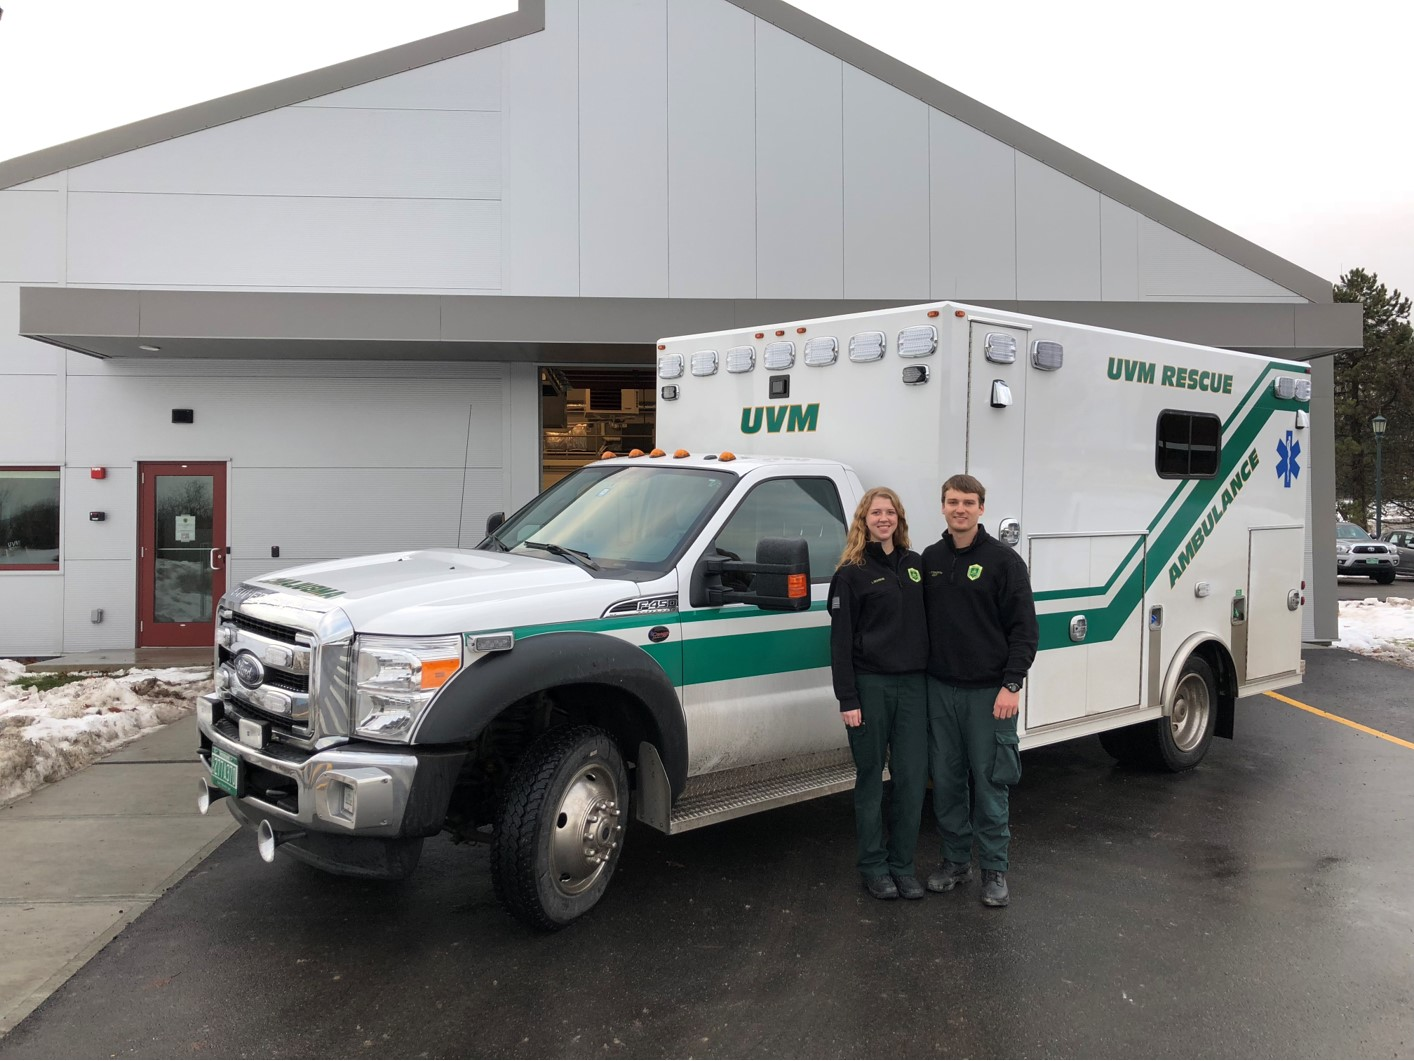 Libby Schwab, F'14, and Kyle Titsworth, S'12, on duty together for UVM Rescue.